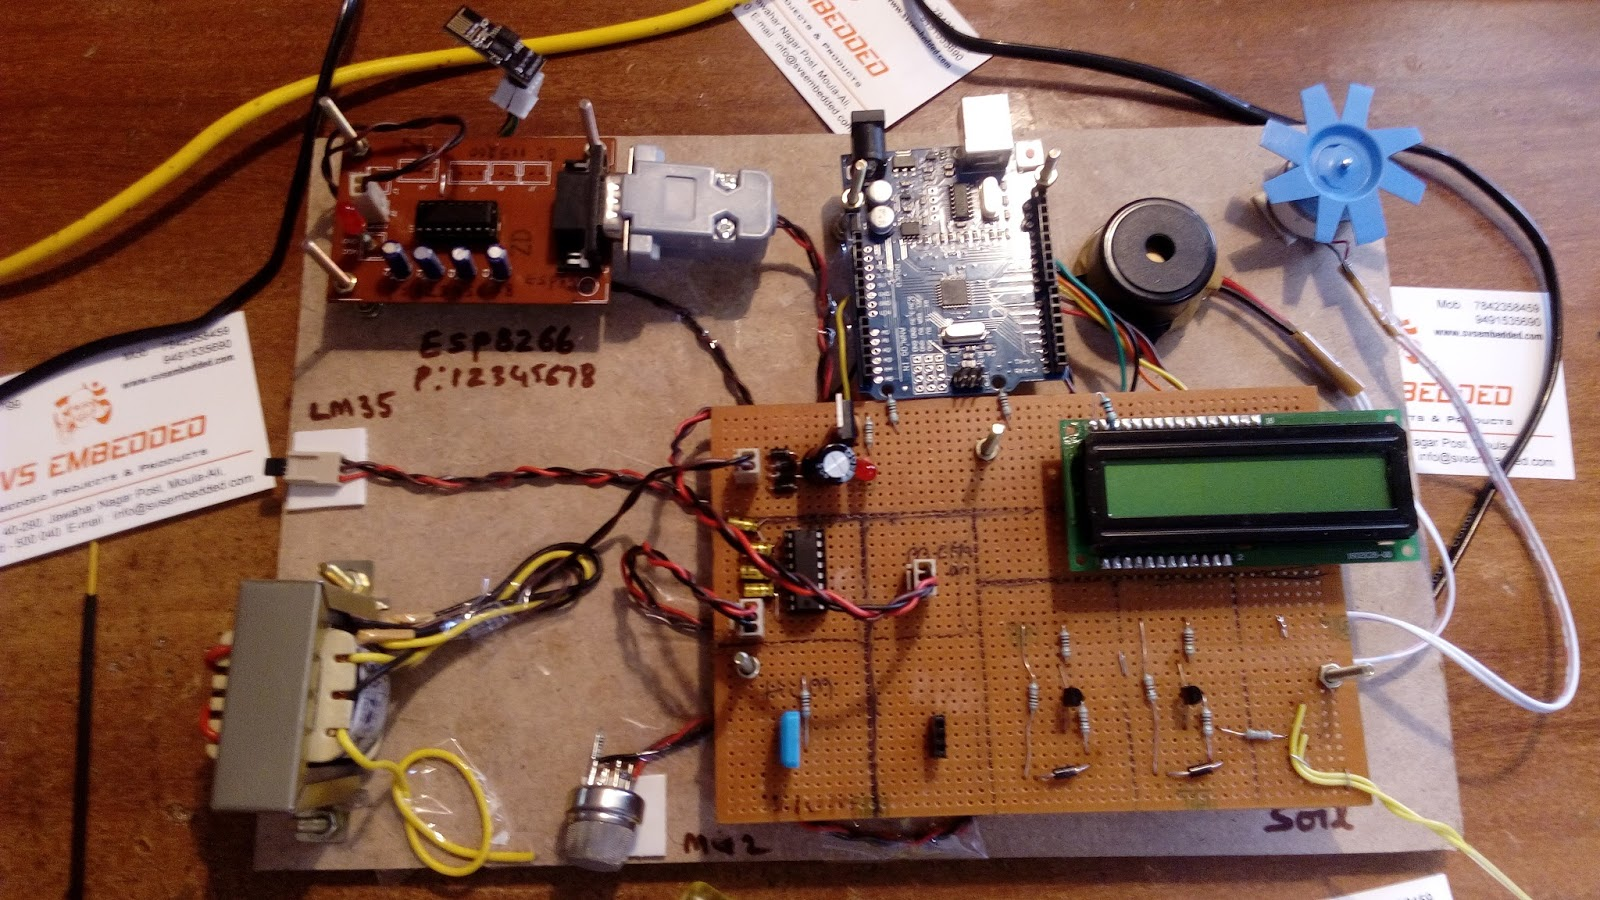 Svsembedded Projects 919491535690 91 7842358459 2016 2017 Ieee 3 Axis Accelerometer Using Pic16f887 Svsembeddedcom Infosvsembeddedcom Contact 9491535690 917842358459